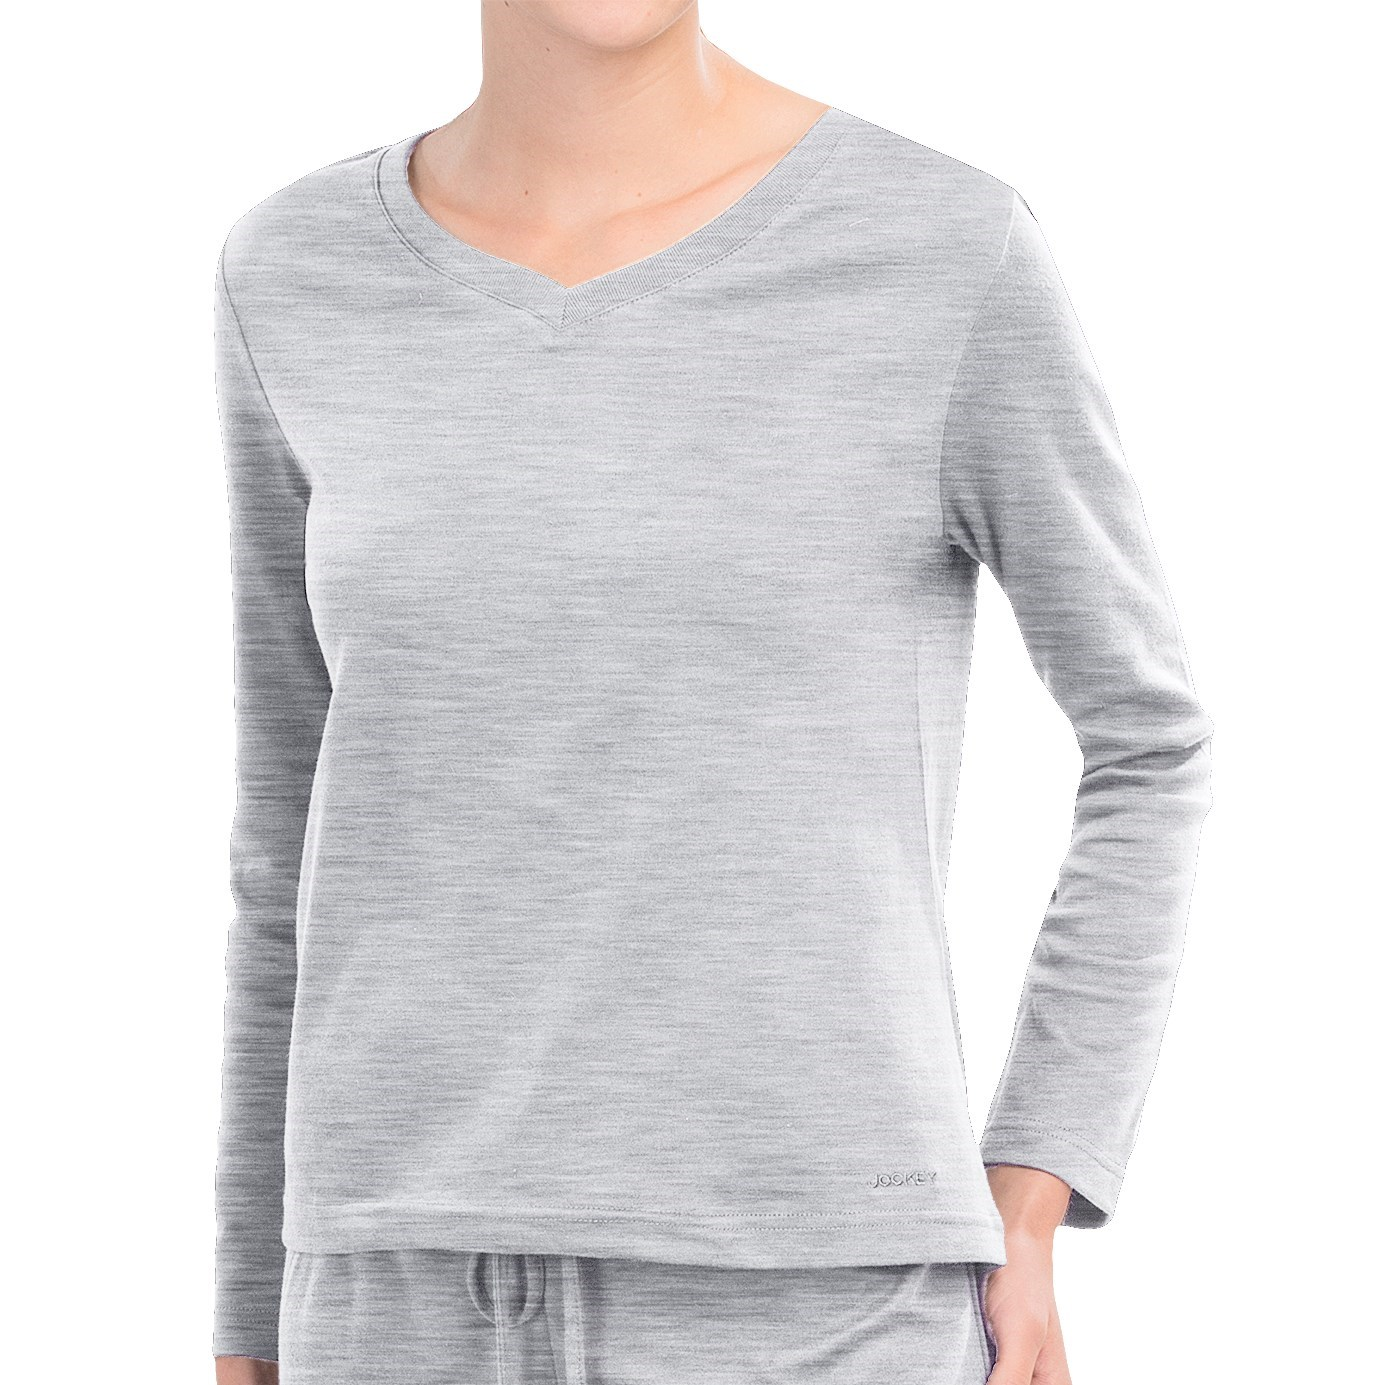 Lounge Tops. Love to lounge in our selection of women's lounge tops from Urban Outfitters. Get comfy in our women's oversized tees, PJ pants, soft cami tank tops for women and fuzzy hoodies.